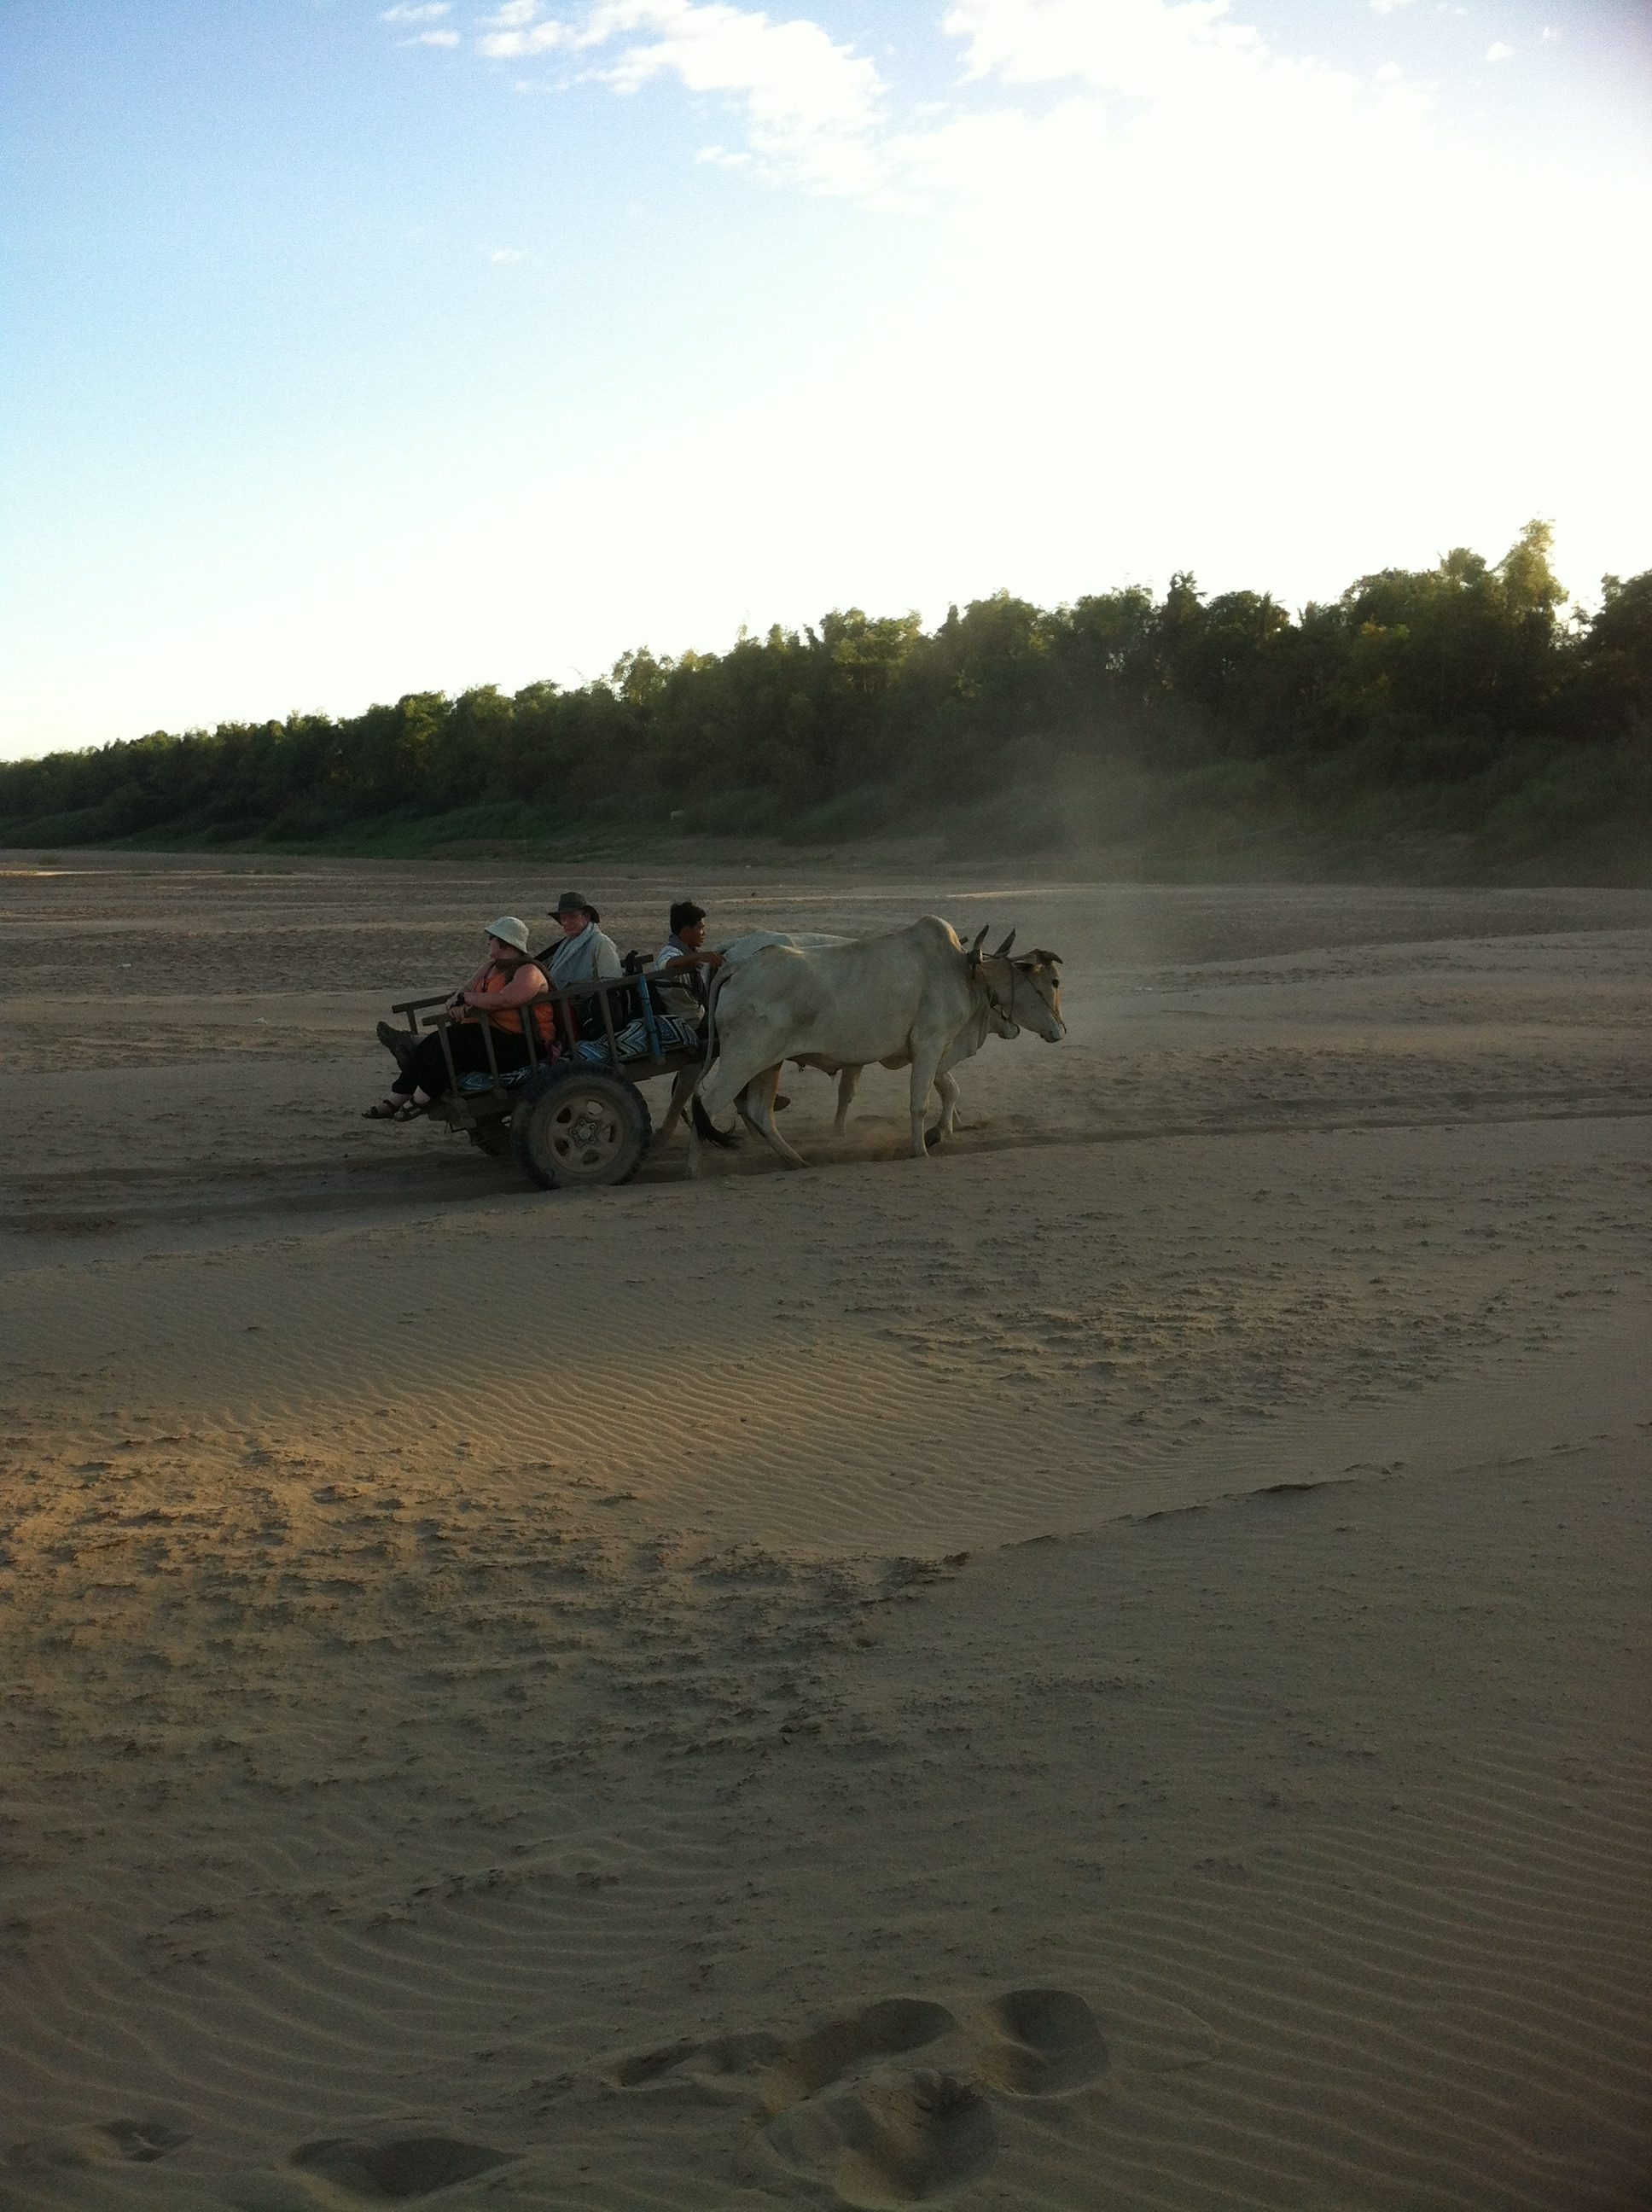 ox carts on the sand :)